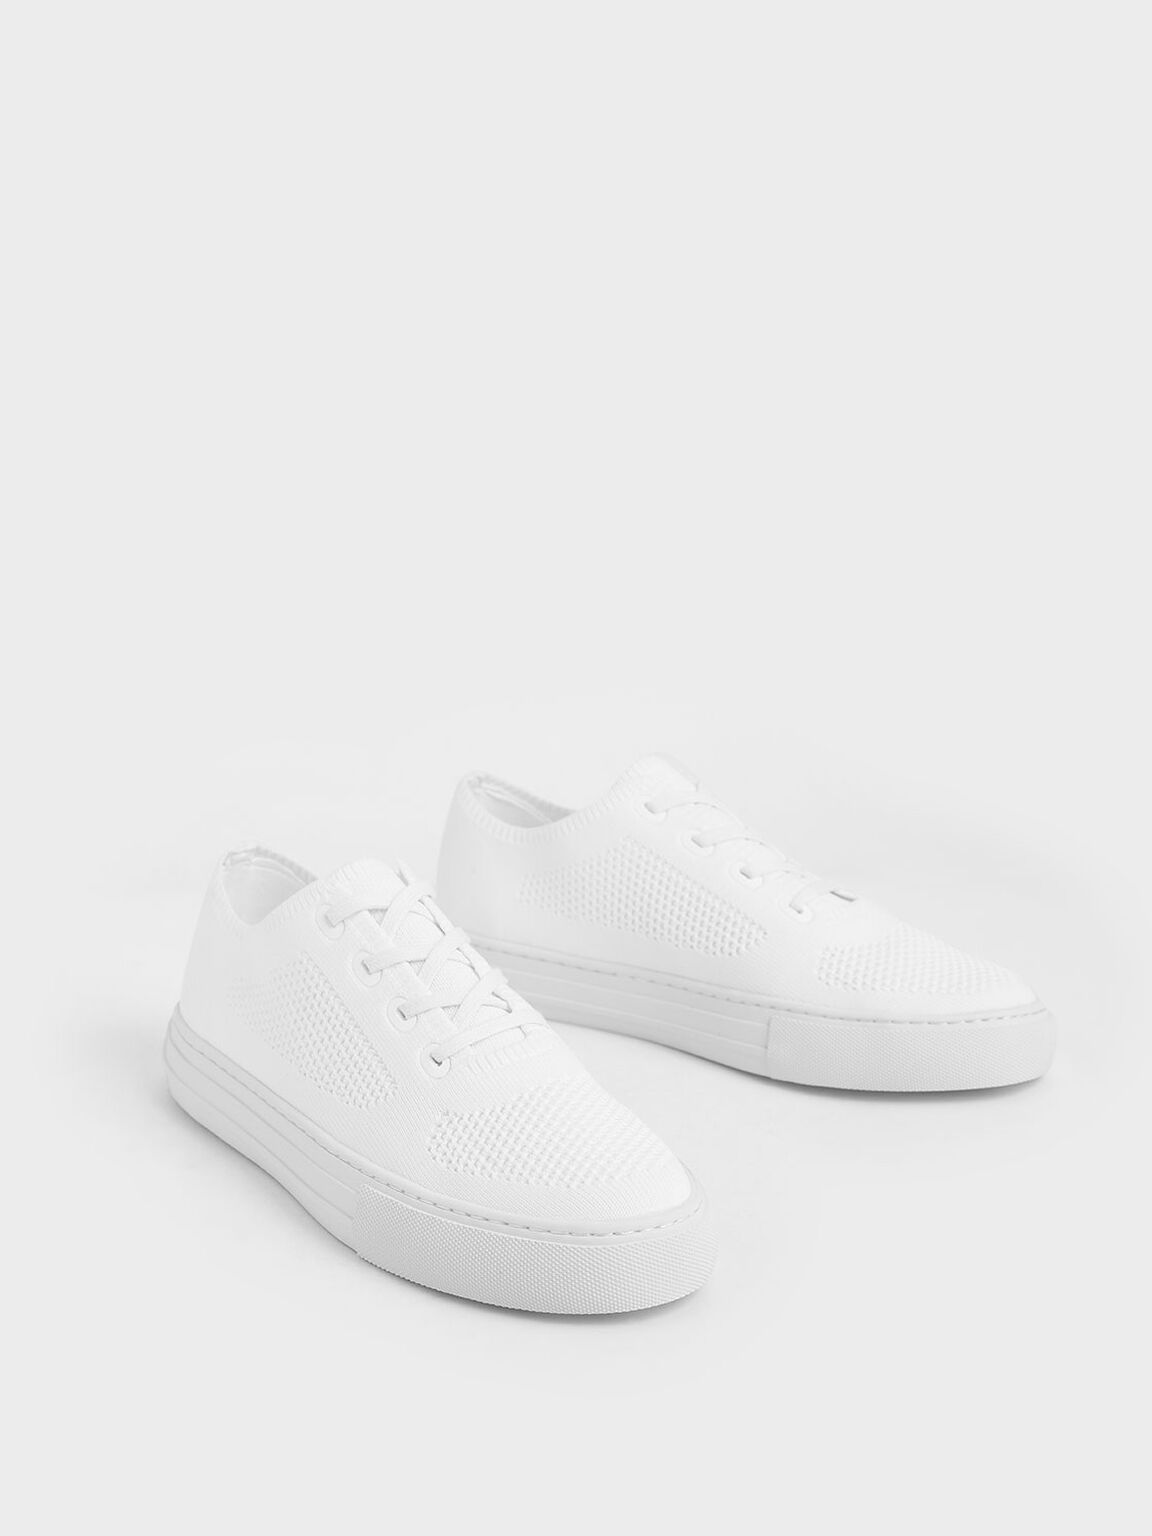 Knitted Lace-Up Sneakers, White, hi-res